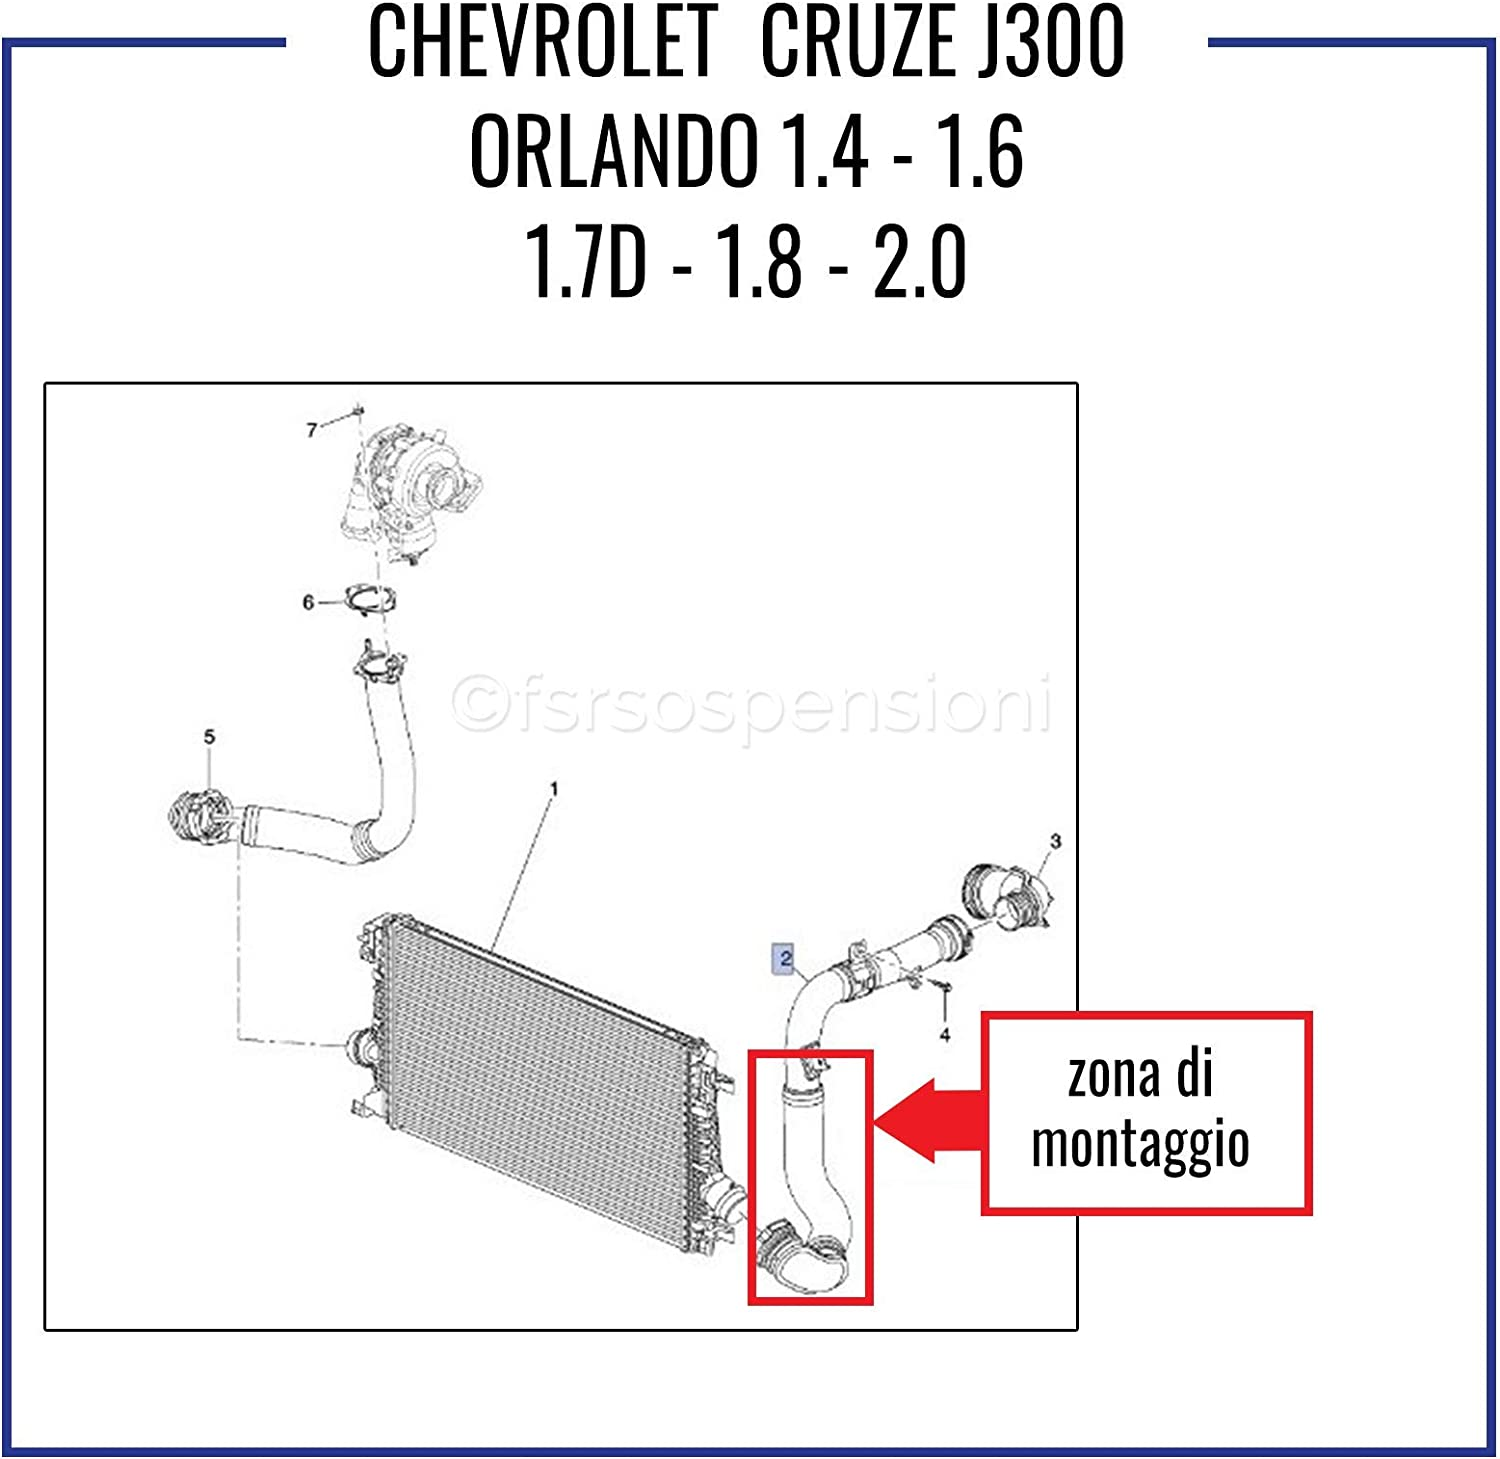 C H E V R O L E T CRUZE J300 ORLANDO POIGN/ÉE INTERCOOLER TUBE TURBO AIR 95048394-95275281